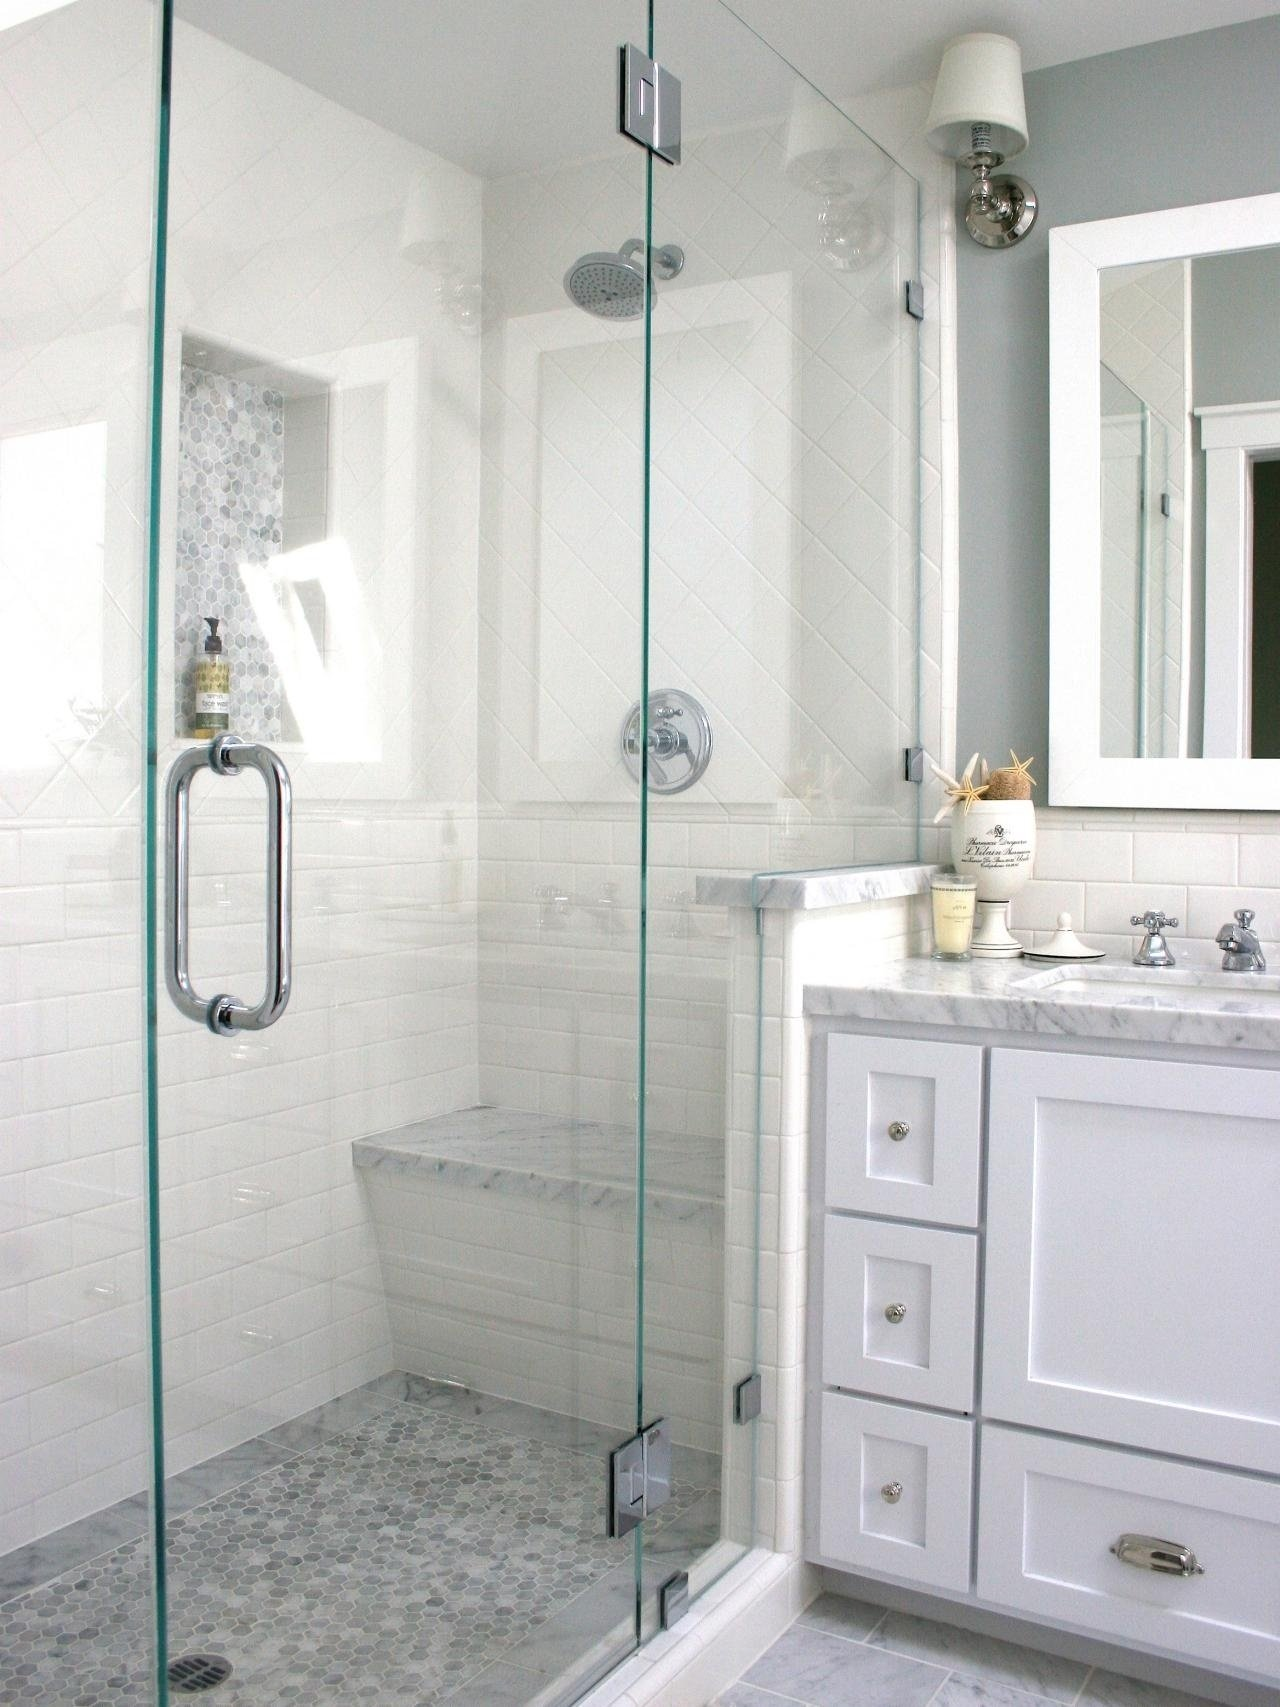 10 Trendy Walk In Shower Ideas For Small Bathrooms